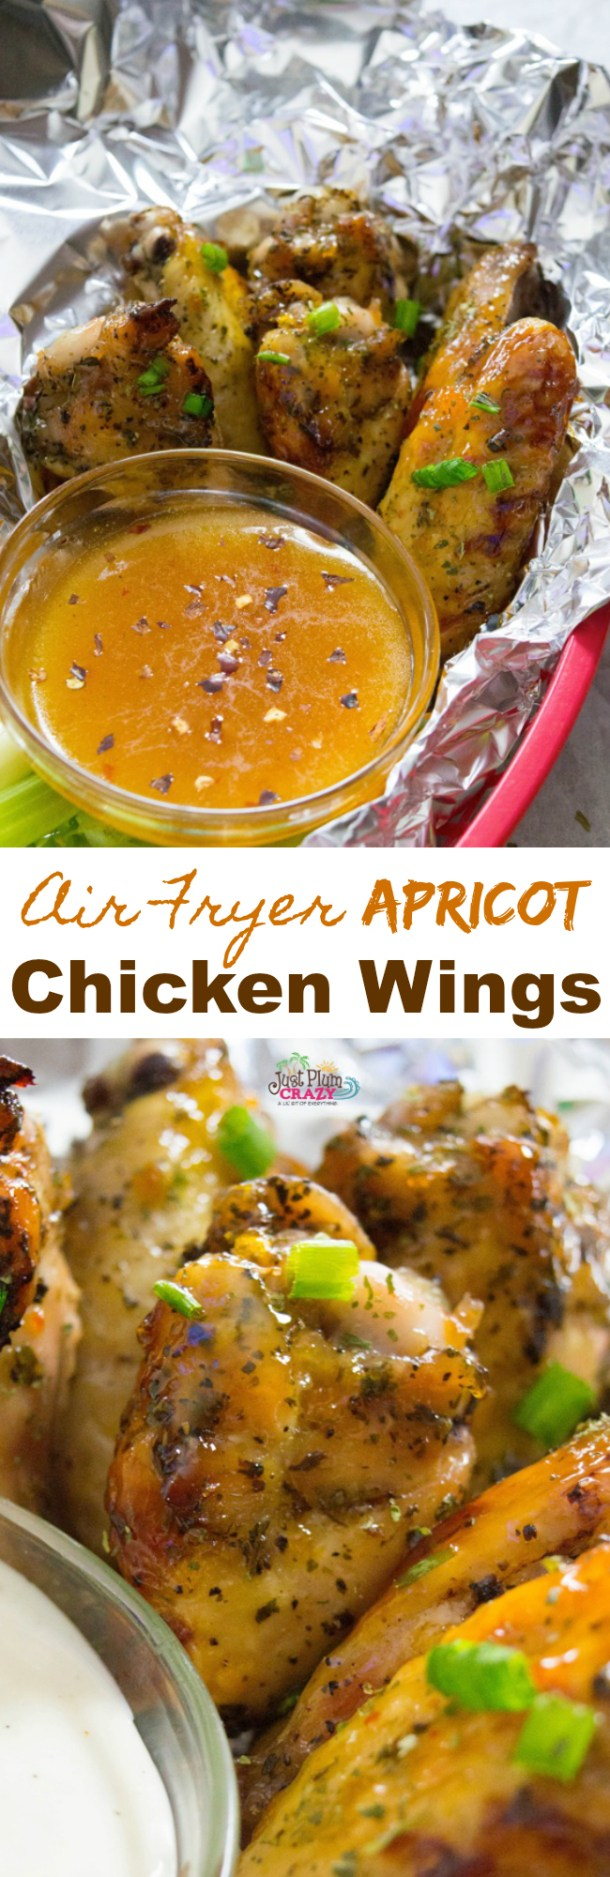 If you're following our National Food Days recipes, then today we have National Apricot Day. What better way to celebrate it than with an Air Fryer Apricot Chicken Wings recipe.